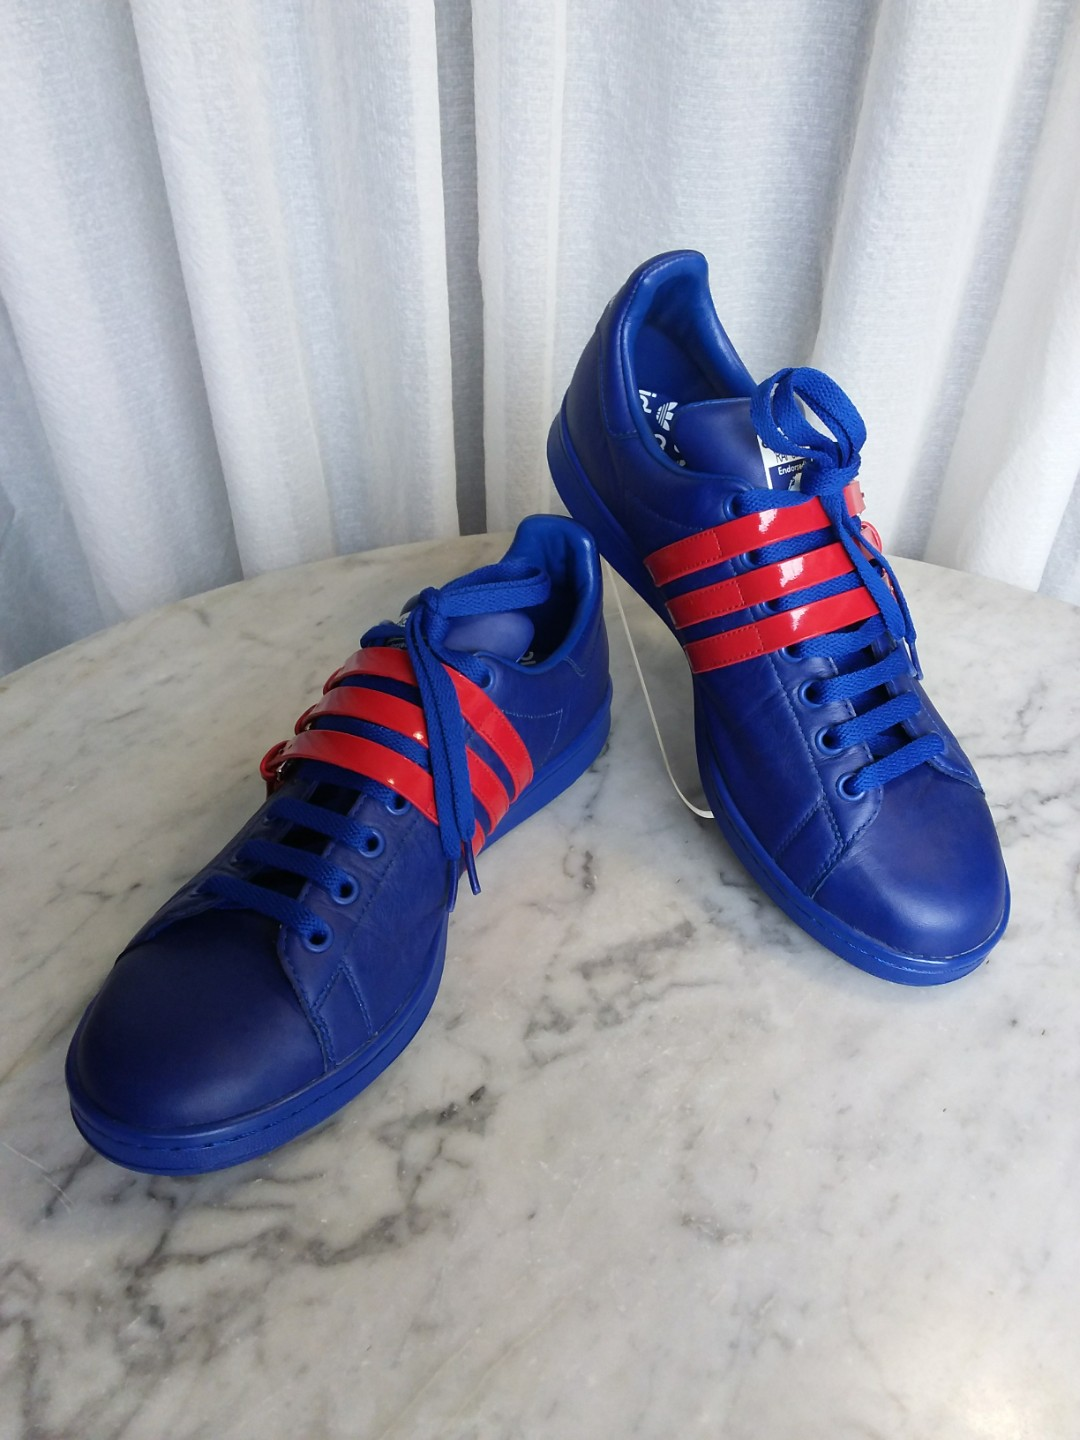 19042a12c09 NEW YEAR SALE! Adidas x Raf Simons Sneakers